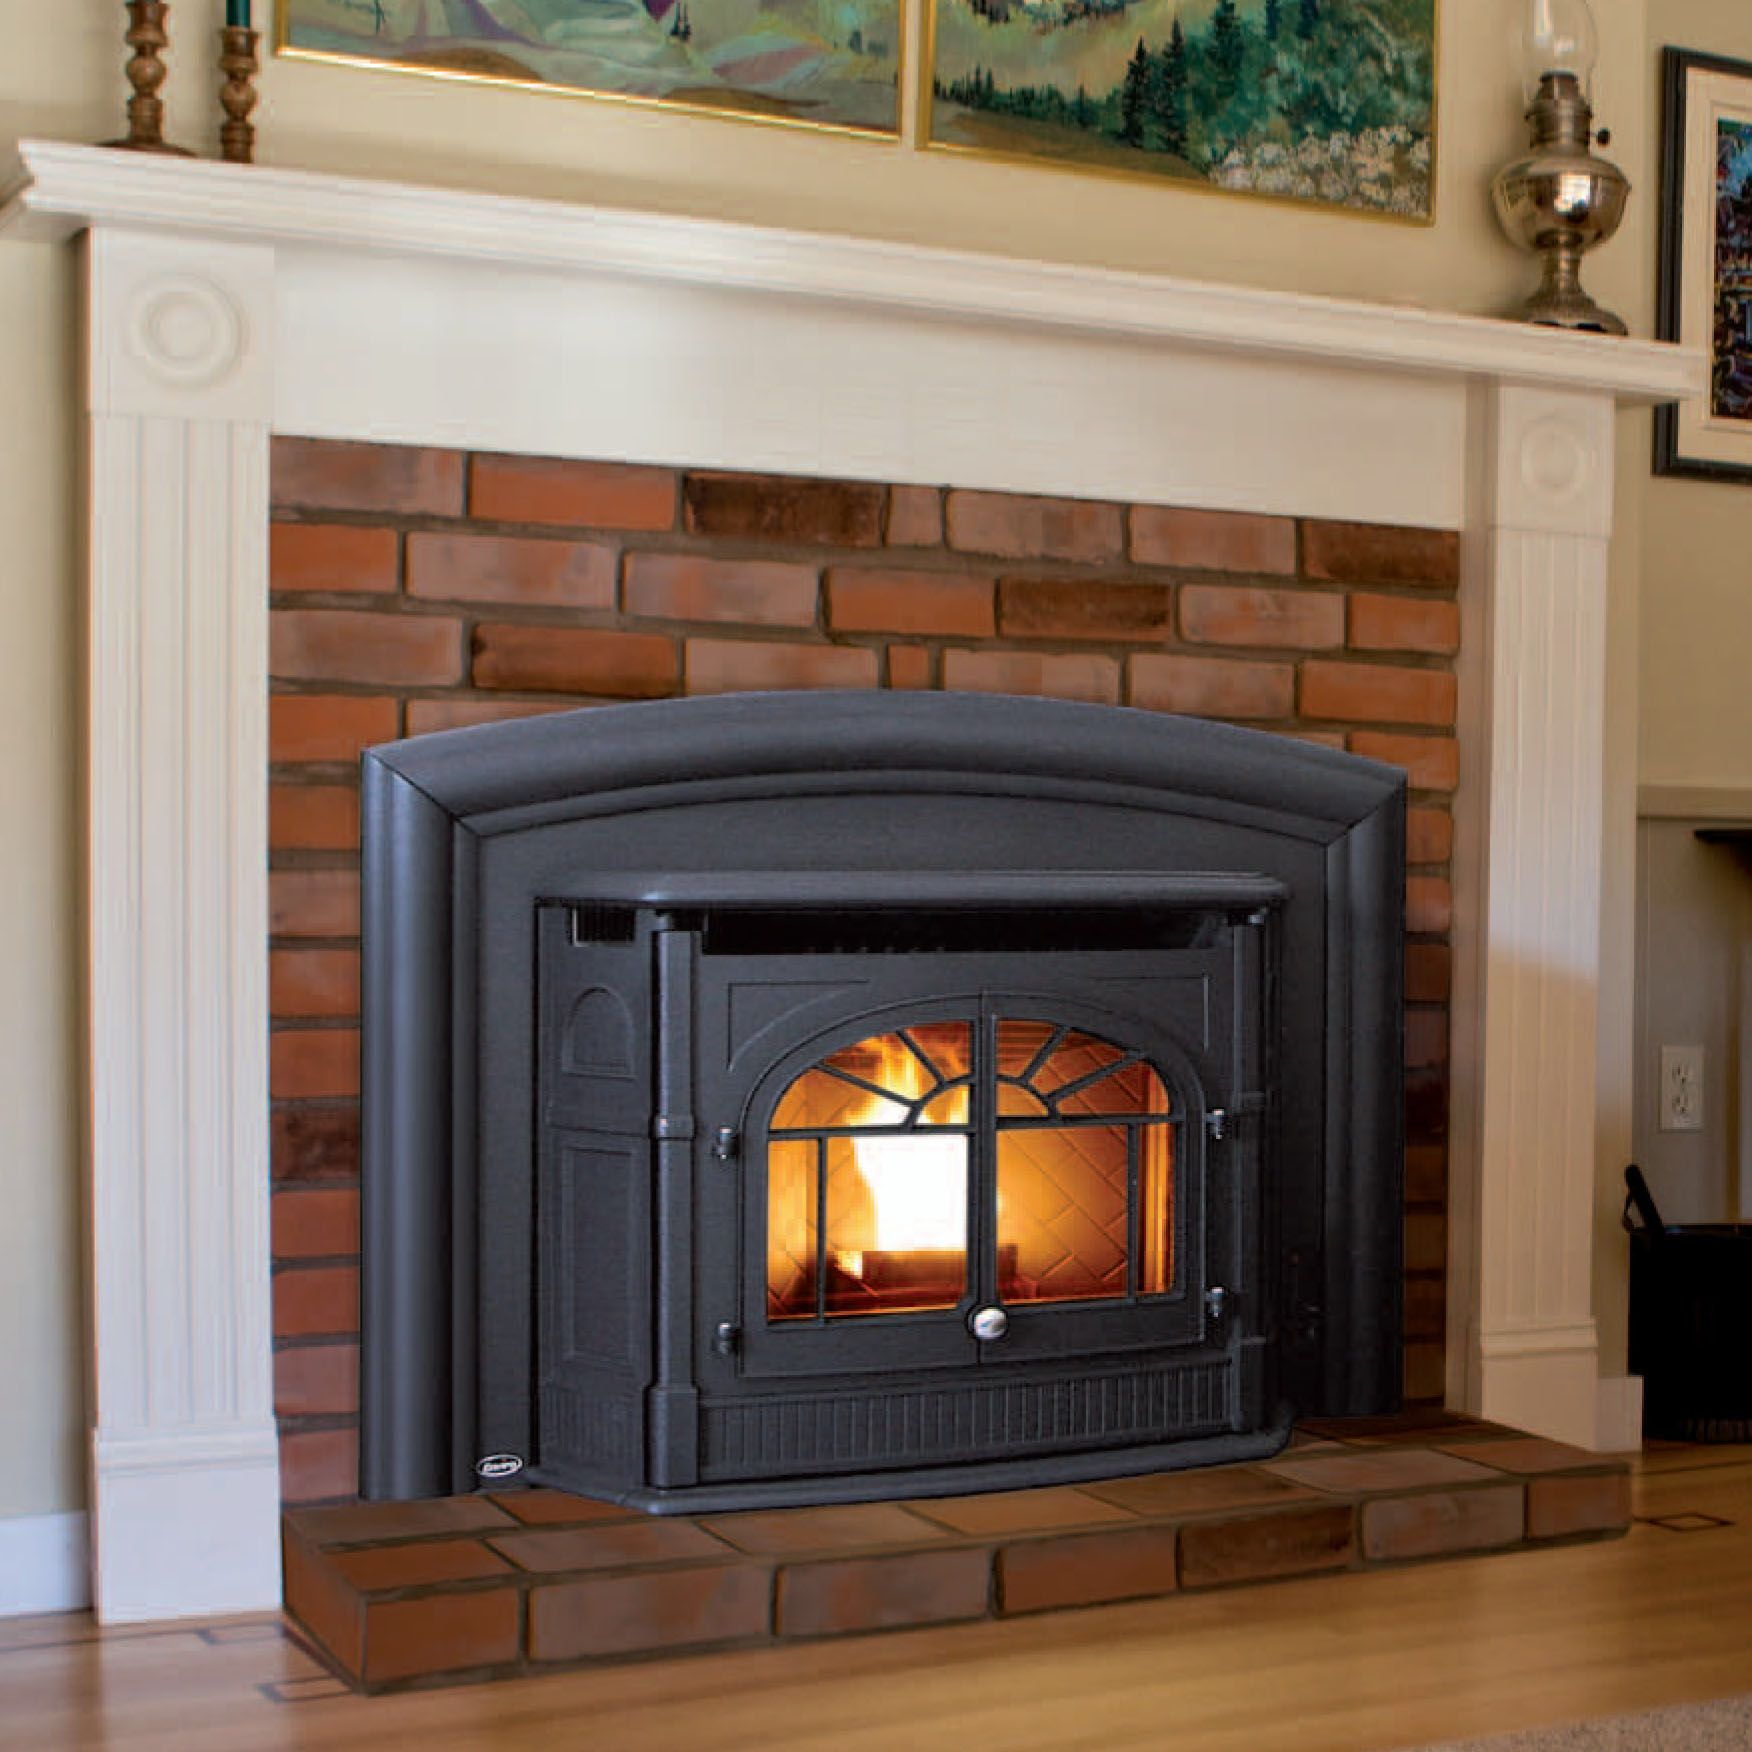 Image From Http Emerydesigns Net Pine Lake Stoves Manufacturers Enviro Pellet 20inserts Empress Jpg Pellet Stove Inserts Fireplace Inserts Pellet Stove